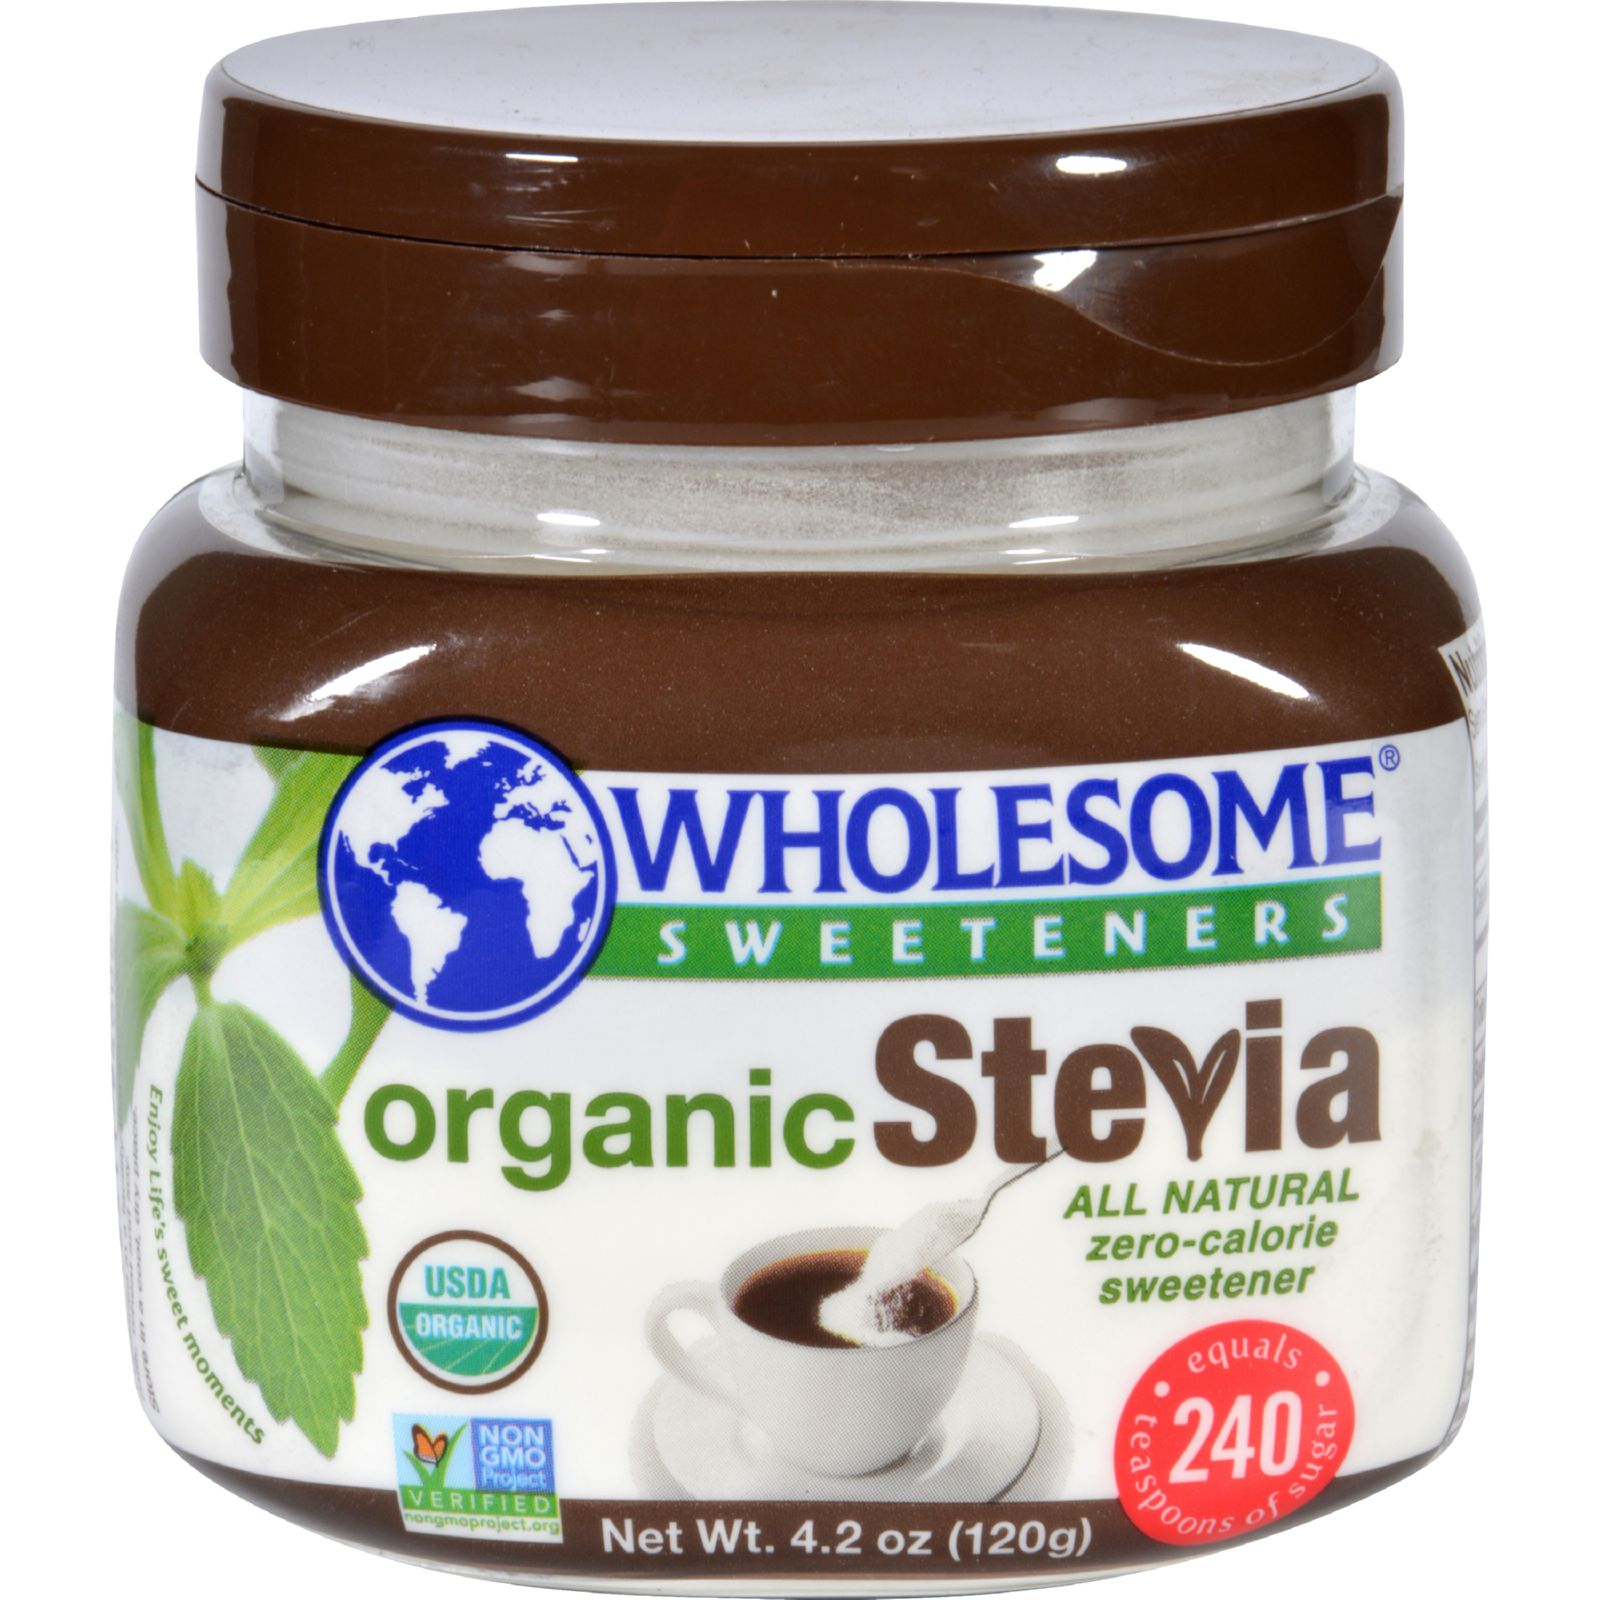 Wholesome Sweeteners Stevia - Organic - Jar - 4.2 Oz - Case Of 6